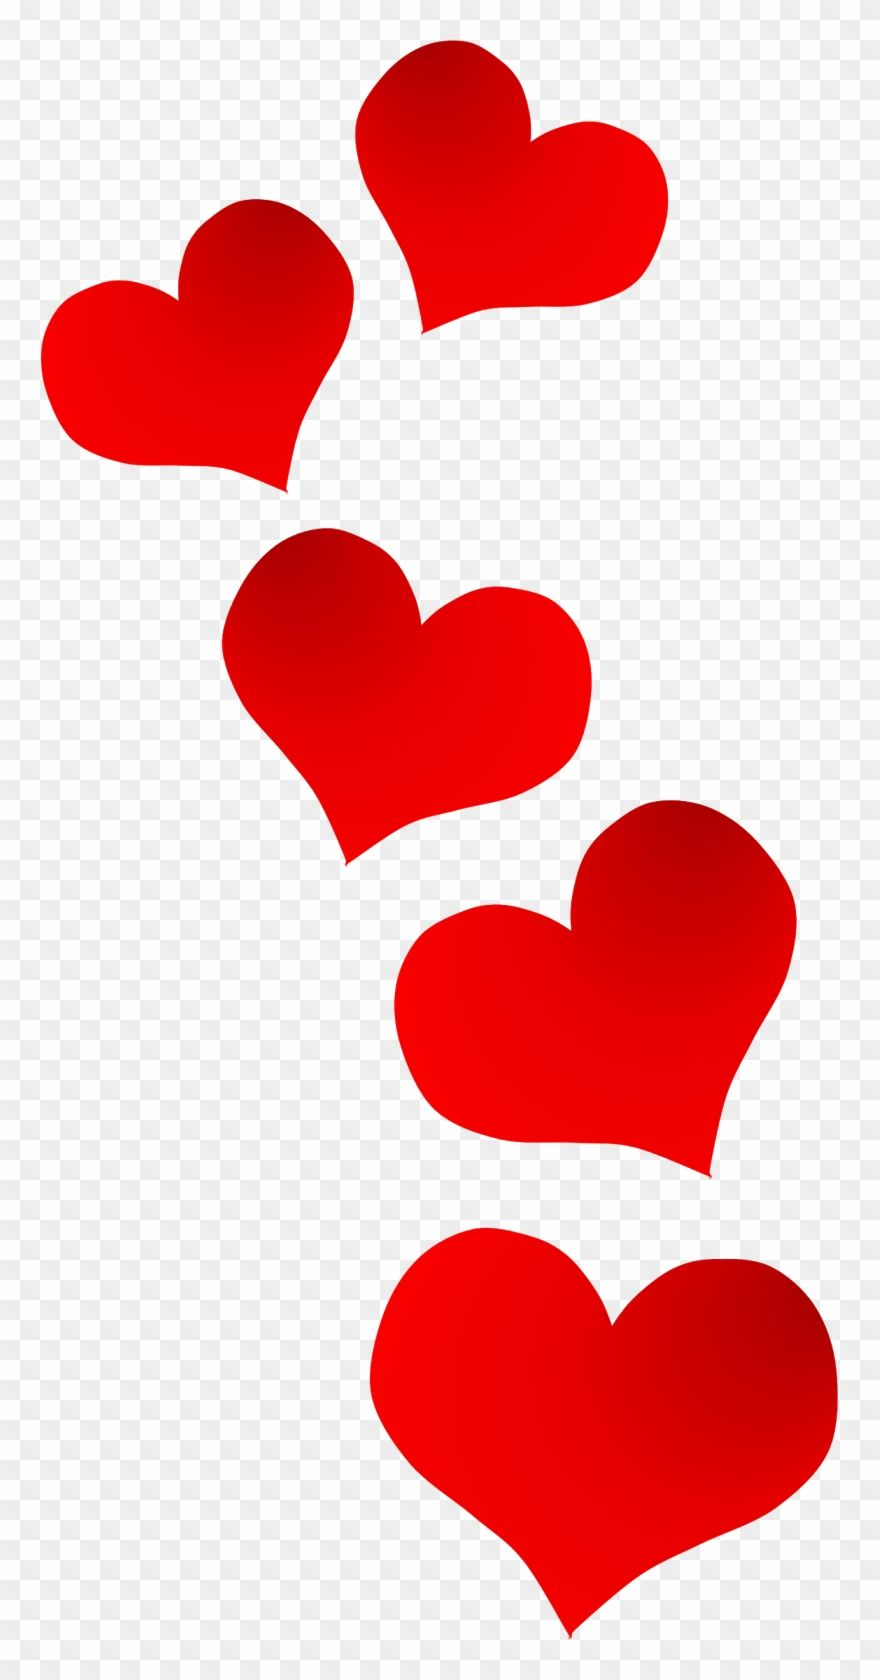 Download Hd Picture Transparent Download Pretty Free On Dumielauxepices Transparent Transparent Background Heart Clip Art Abstract Iphone Wallpaper Clip Art